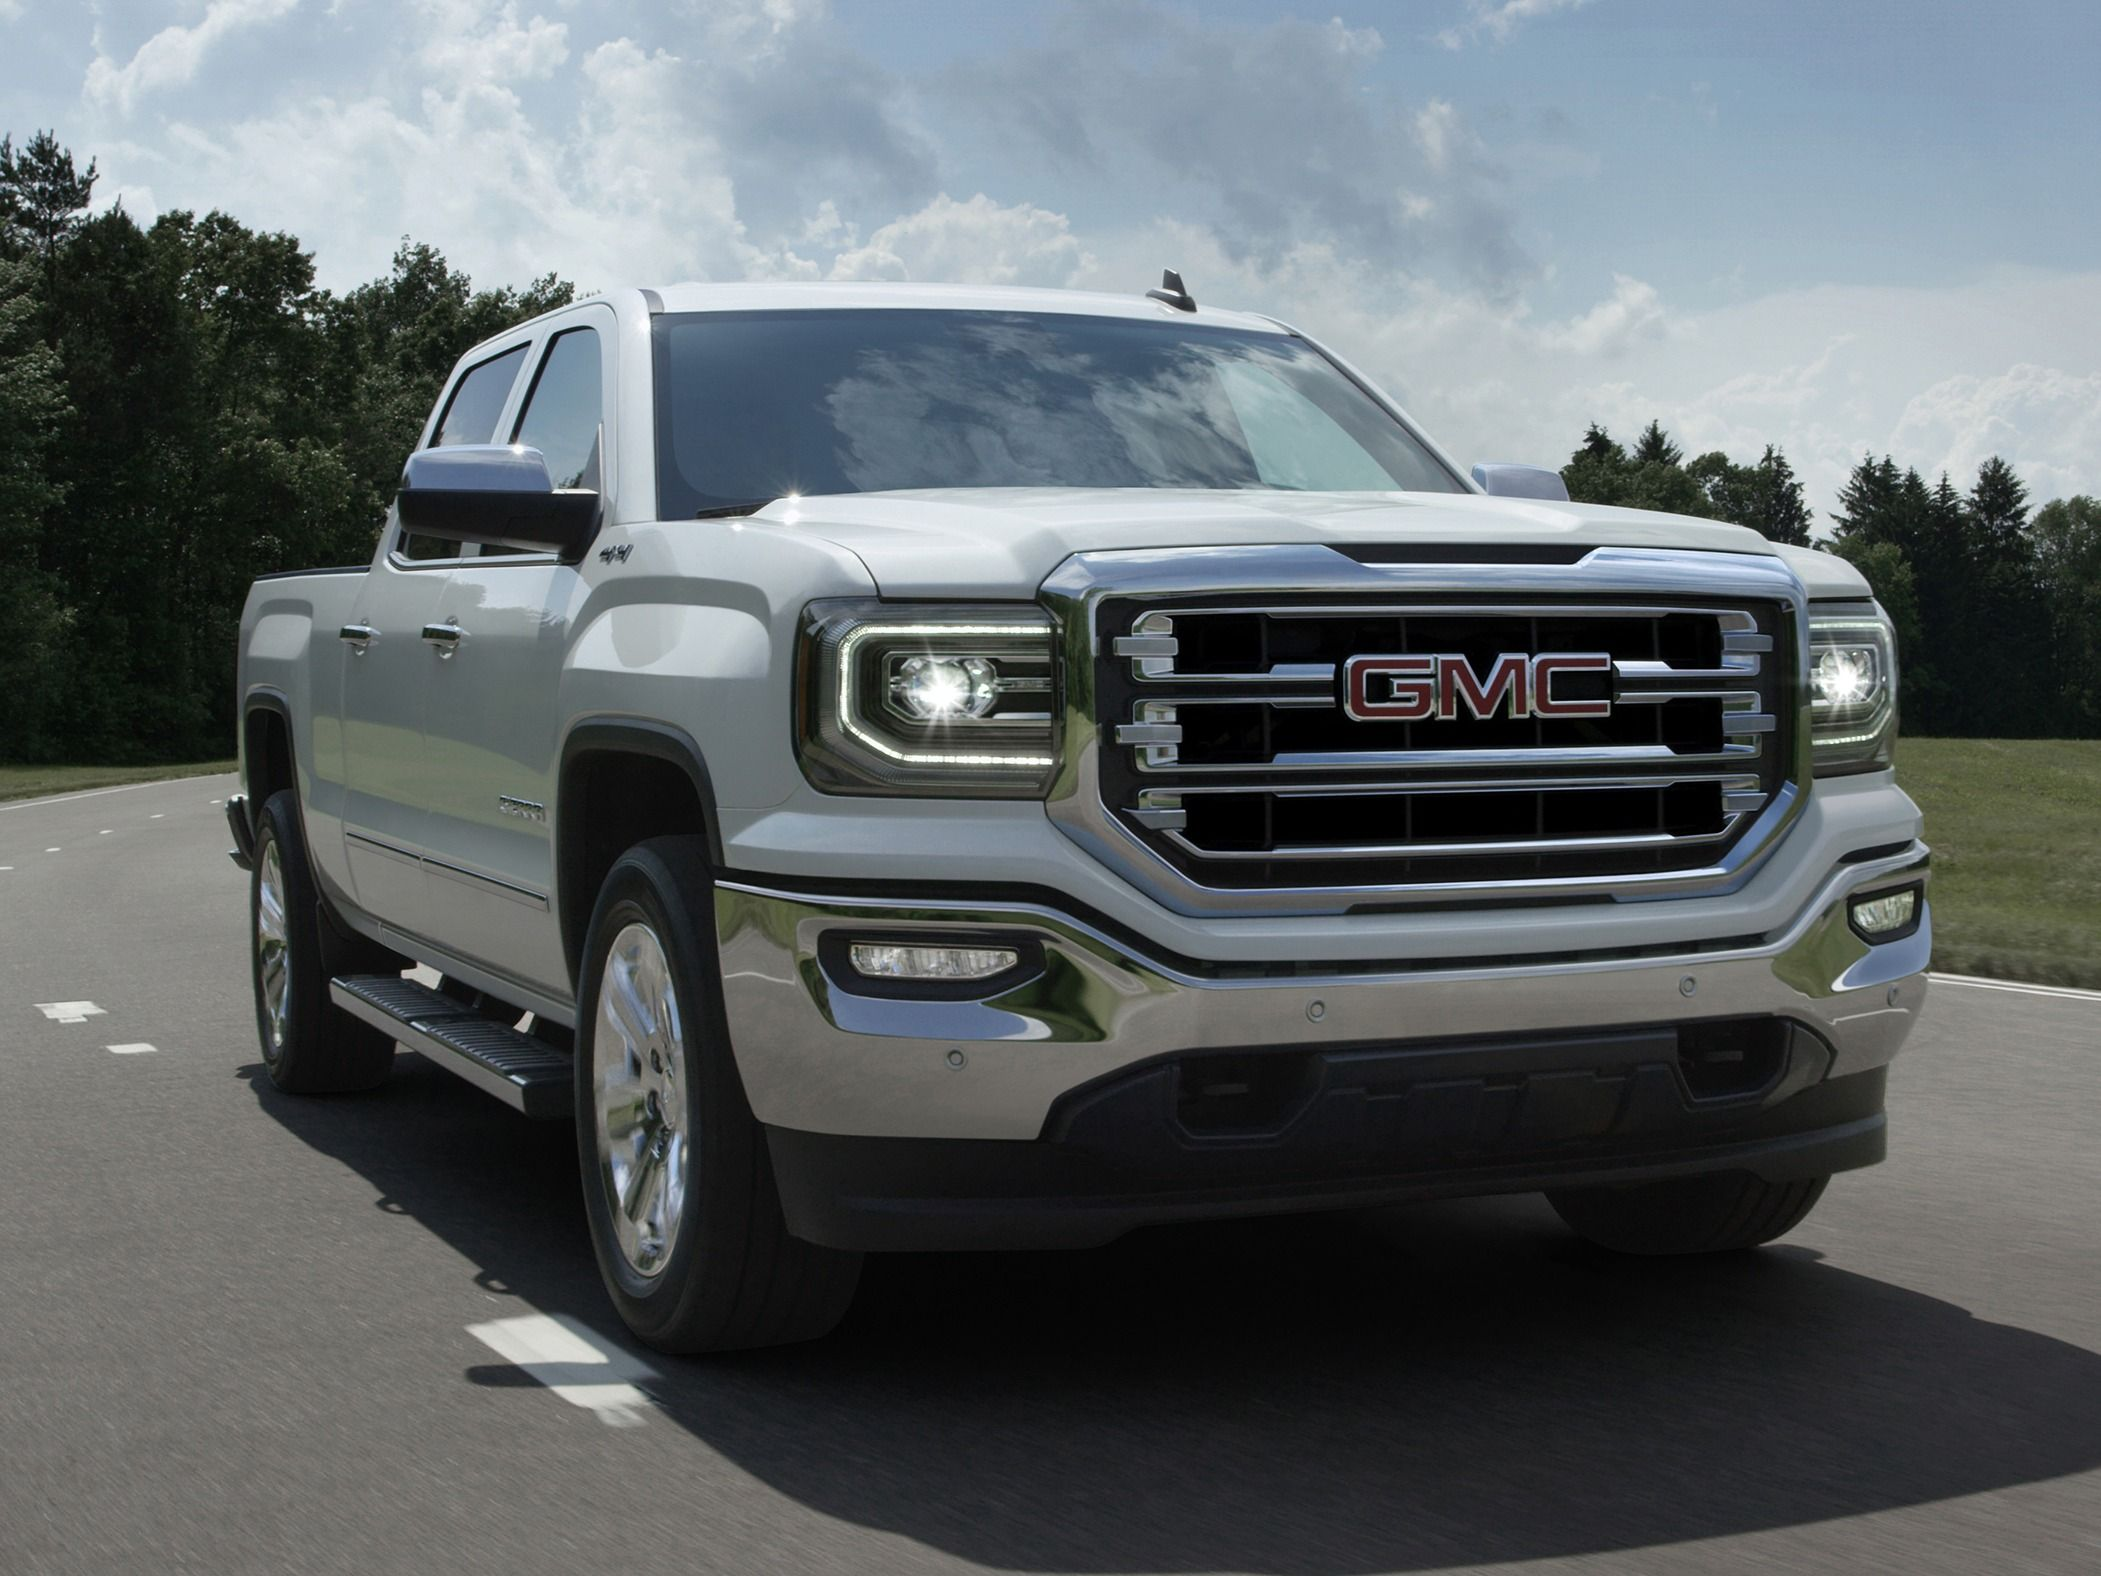 luxury truck rides york speed car higher top news i the cars new sierra in brings gmc more